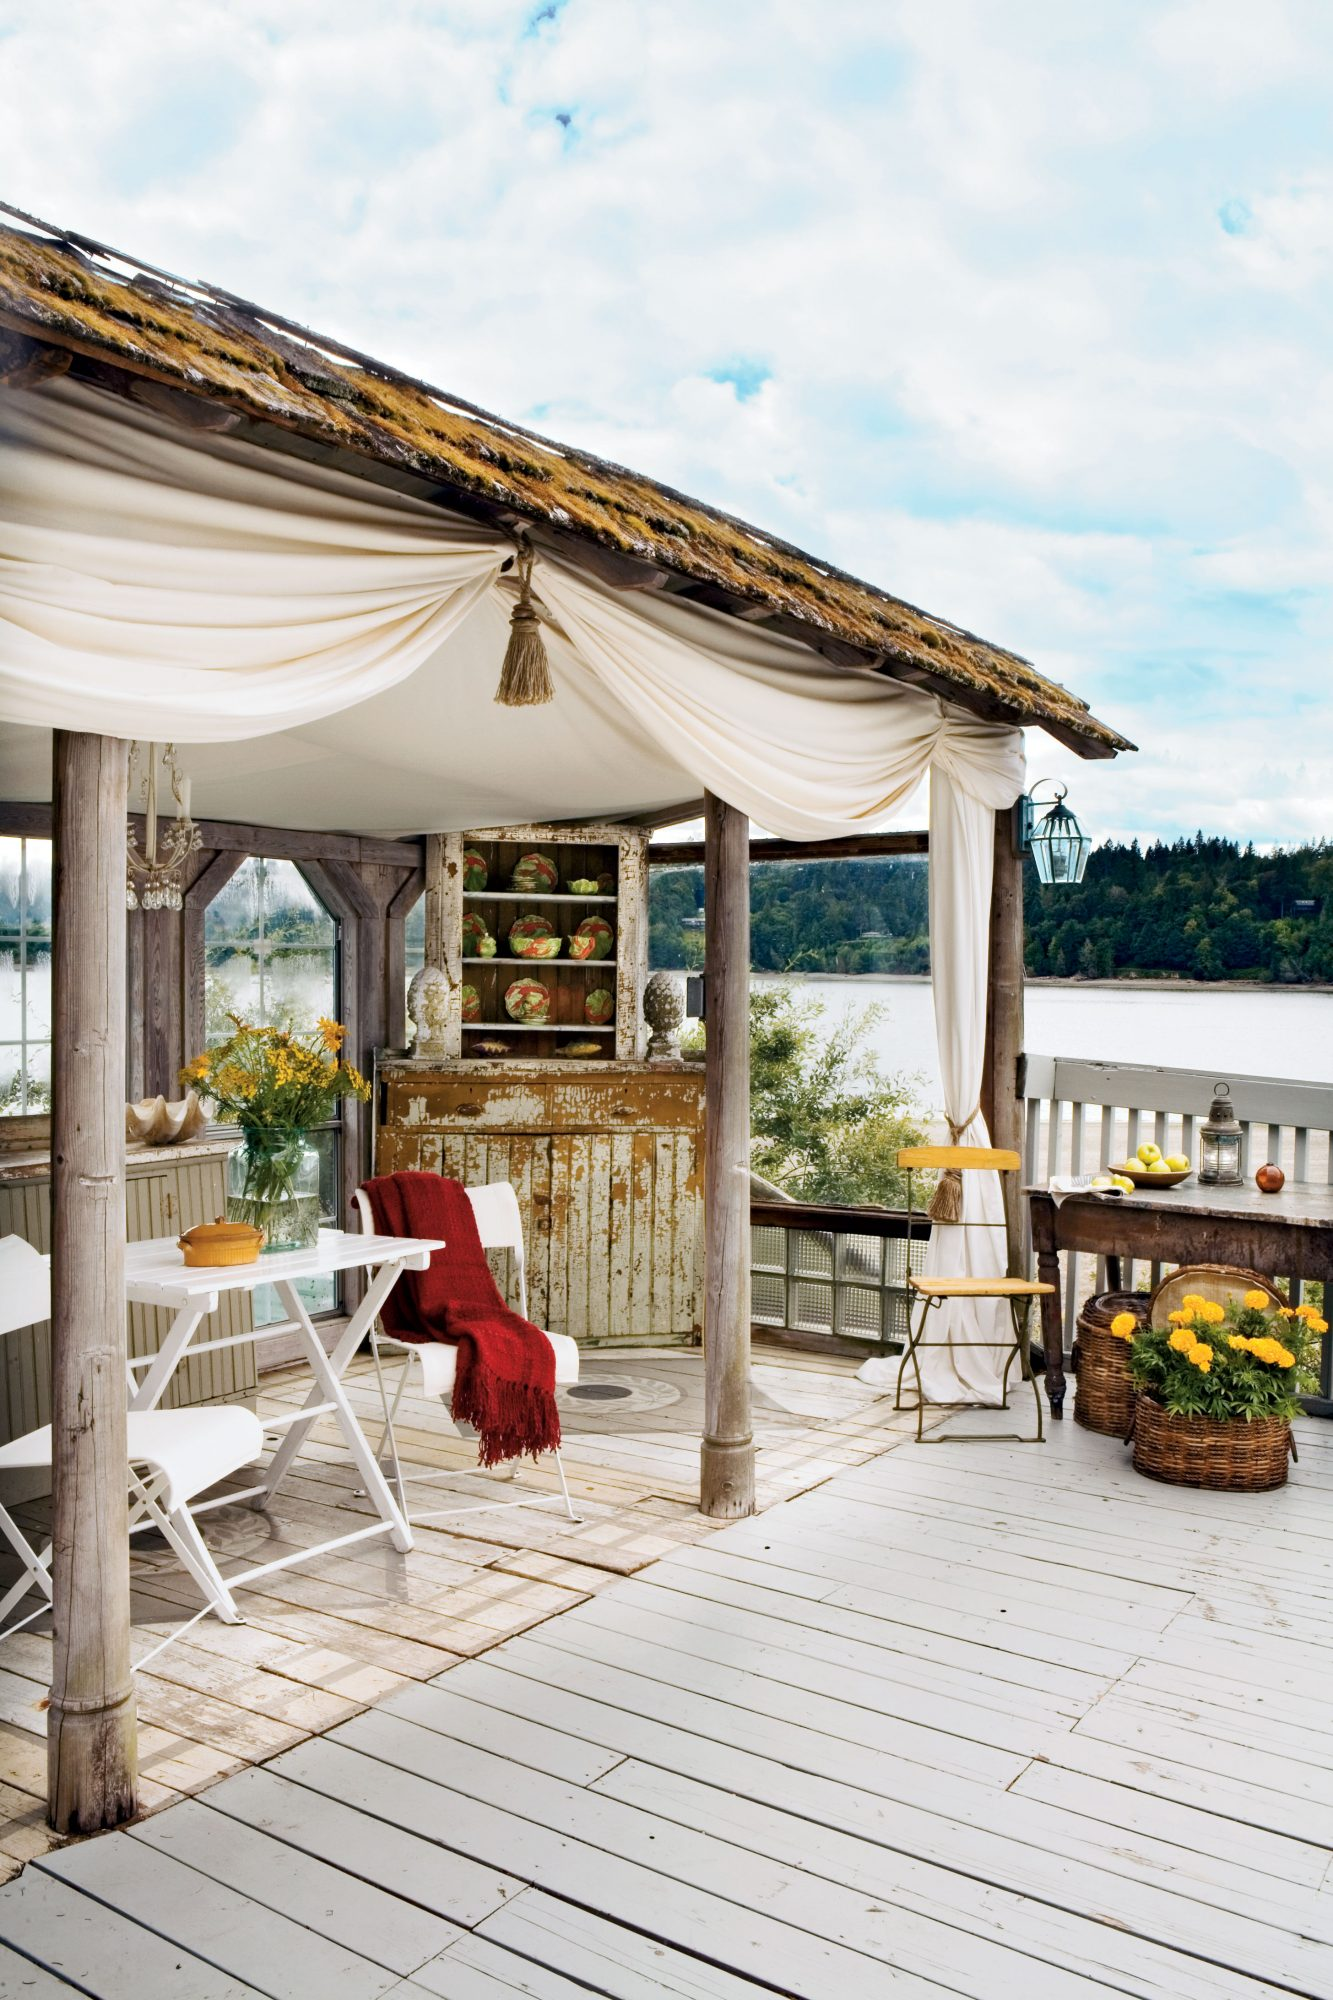 Previous owners built an outdoor room at the end of the main-level deck as a windbreak. The space is outfitted with a hutch, buffet, chandelier, and draperies to make it a comfortable extension of living space.